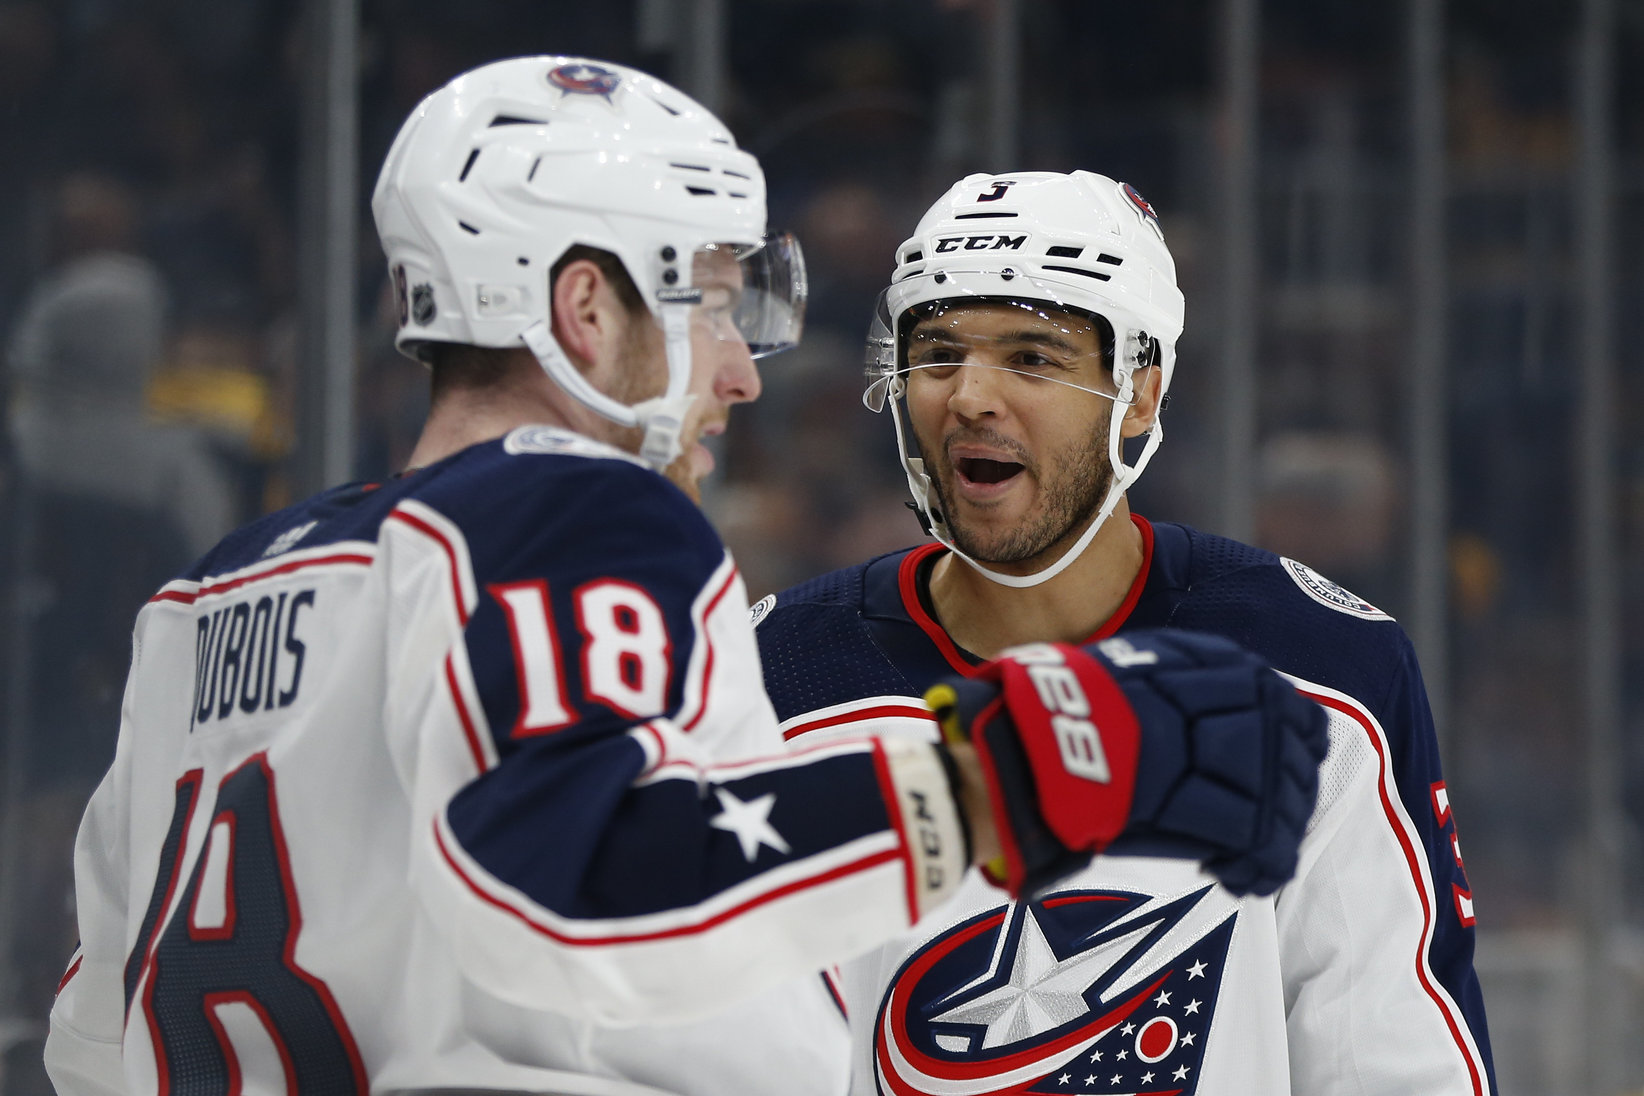 The Columbus Blue Jackets Are One of the Lowest-Scoring Teams in the NHL, But Are Still Finding a Way to Win